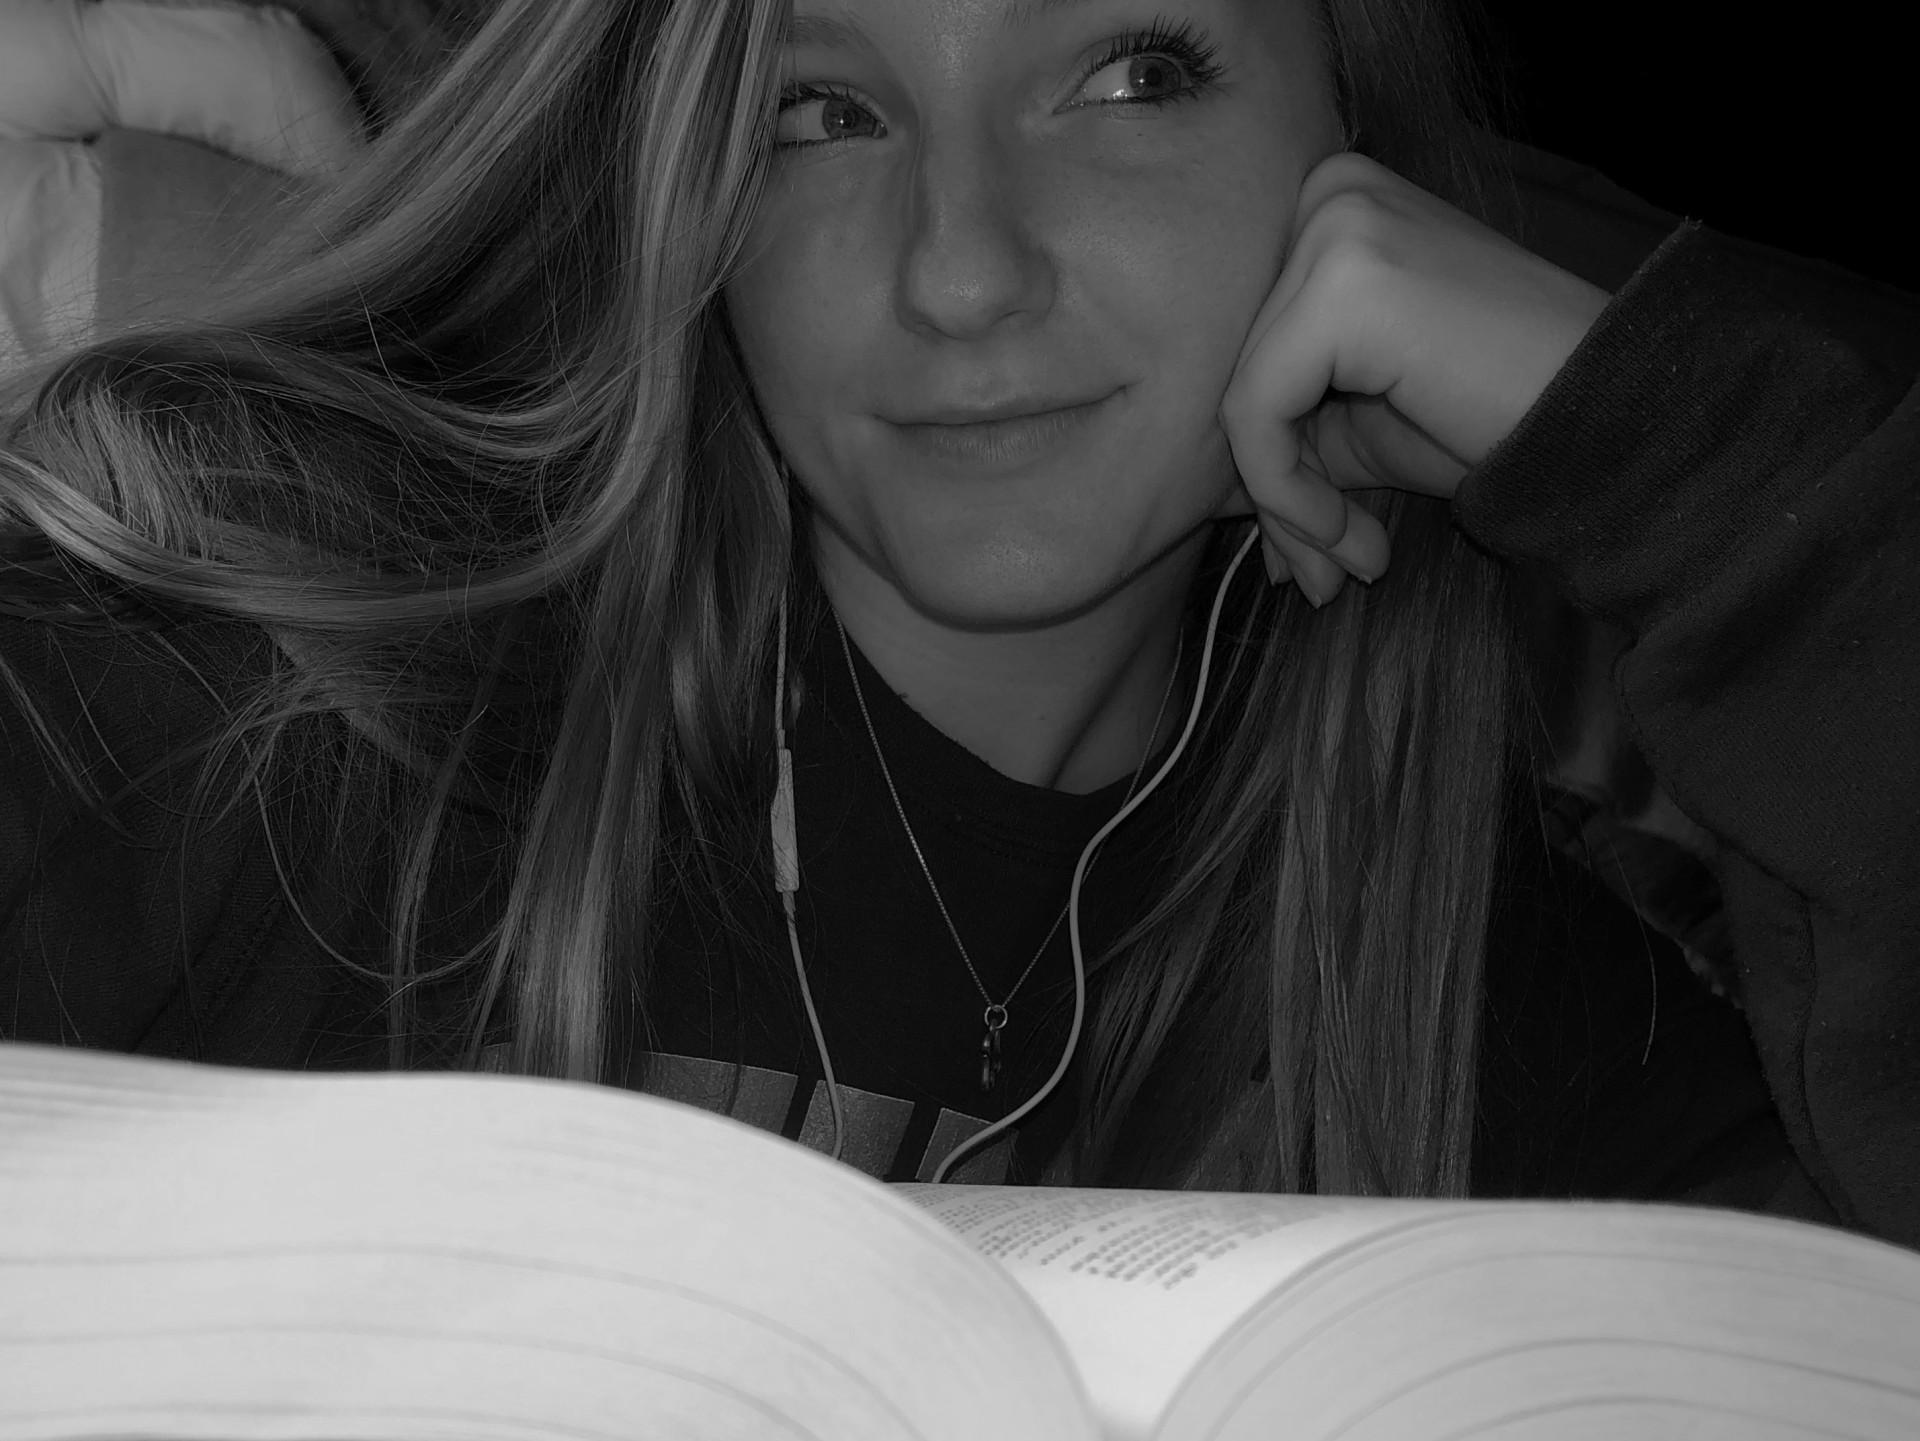 Girl looking off to the side with a book in front of her.